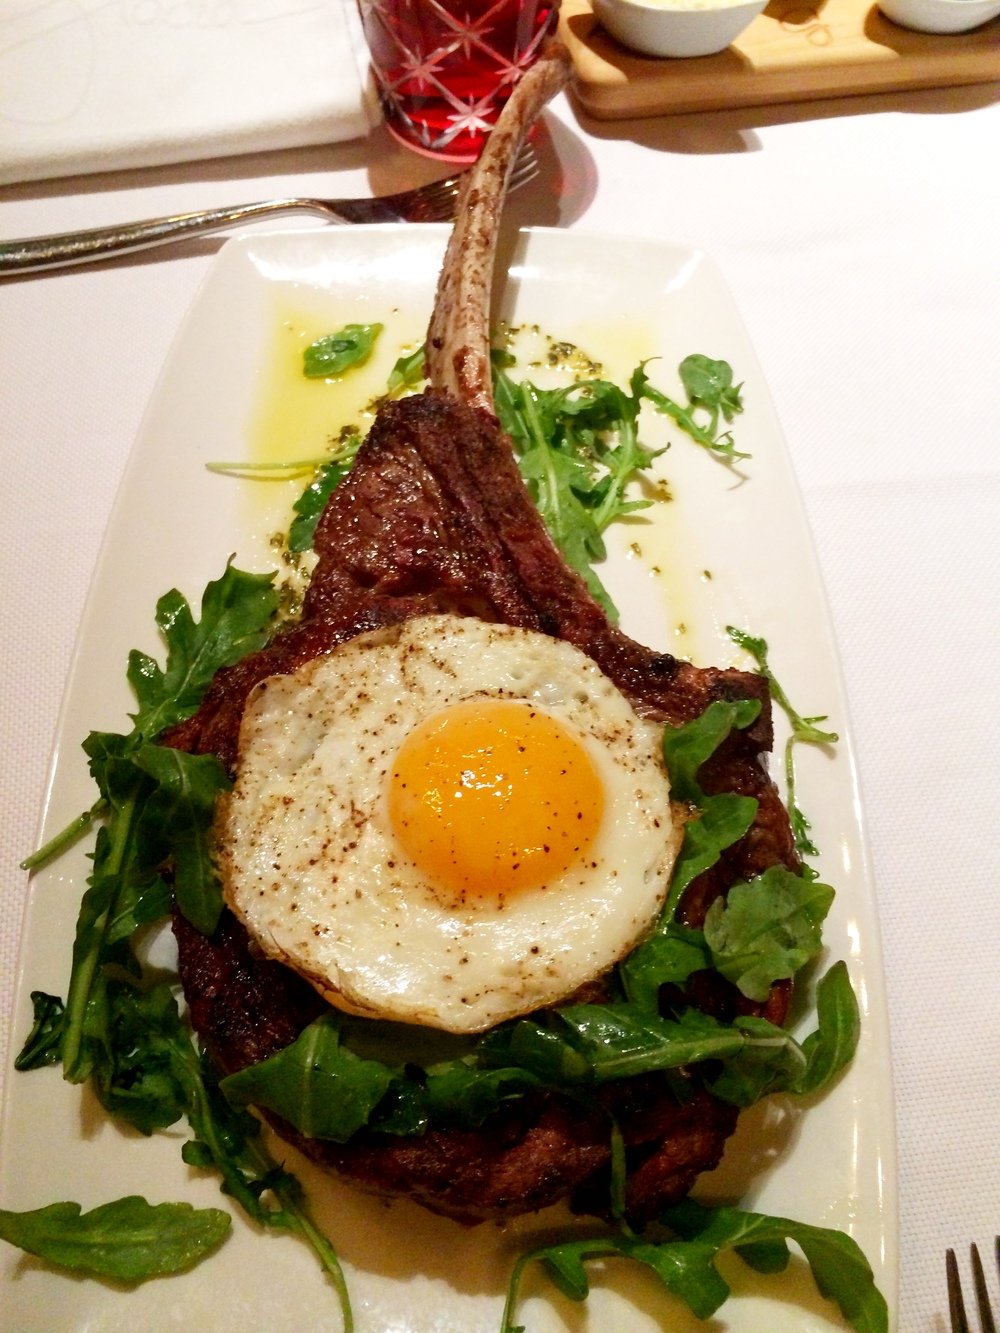 28 ounce Bone in Tuscan Rib Eye, totally just drooled on myself (again)... It is finished with lemon and a fried sunny side up egg! Anything with an egg on top, I'm sold! THIS was my FAVORITE dish! And I will be back for this! Nom Nom.